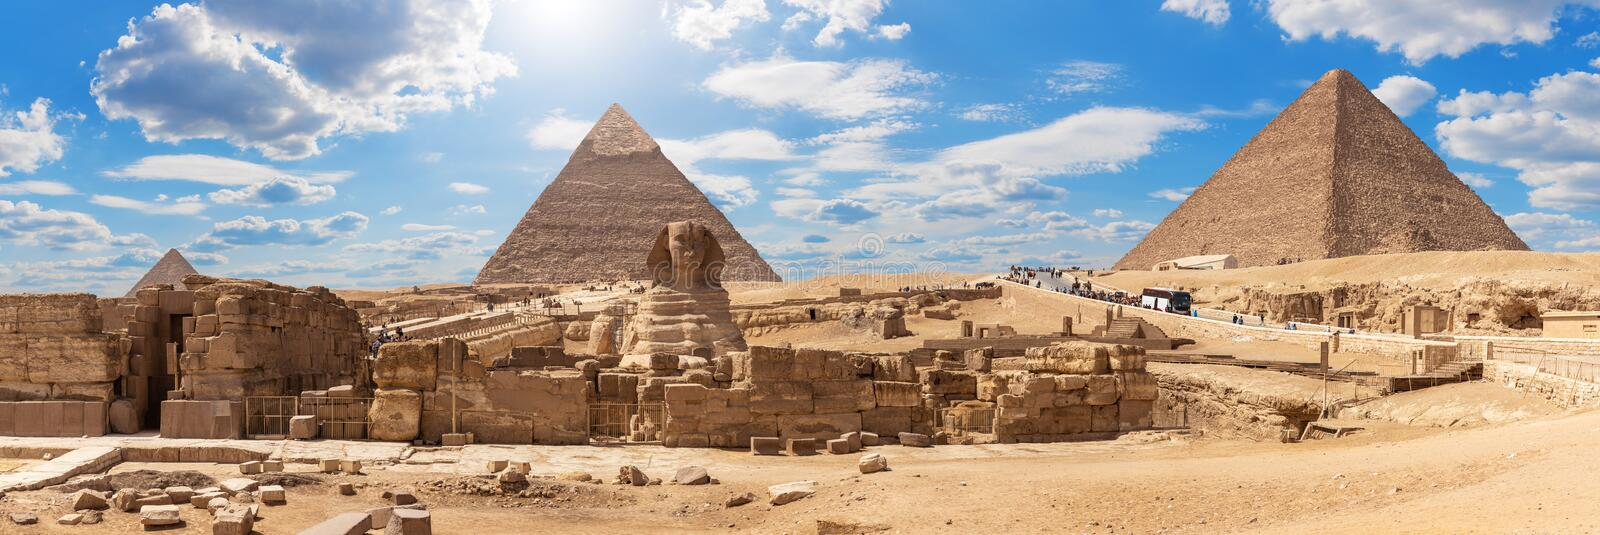 Giza Pyramids and the Sphinx, beautiful Egyptian panorama. Africa, ancient, archaeological, archeology, architecture, blue, building, cairo, camel, chephren royalty free stock photos